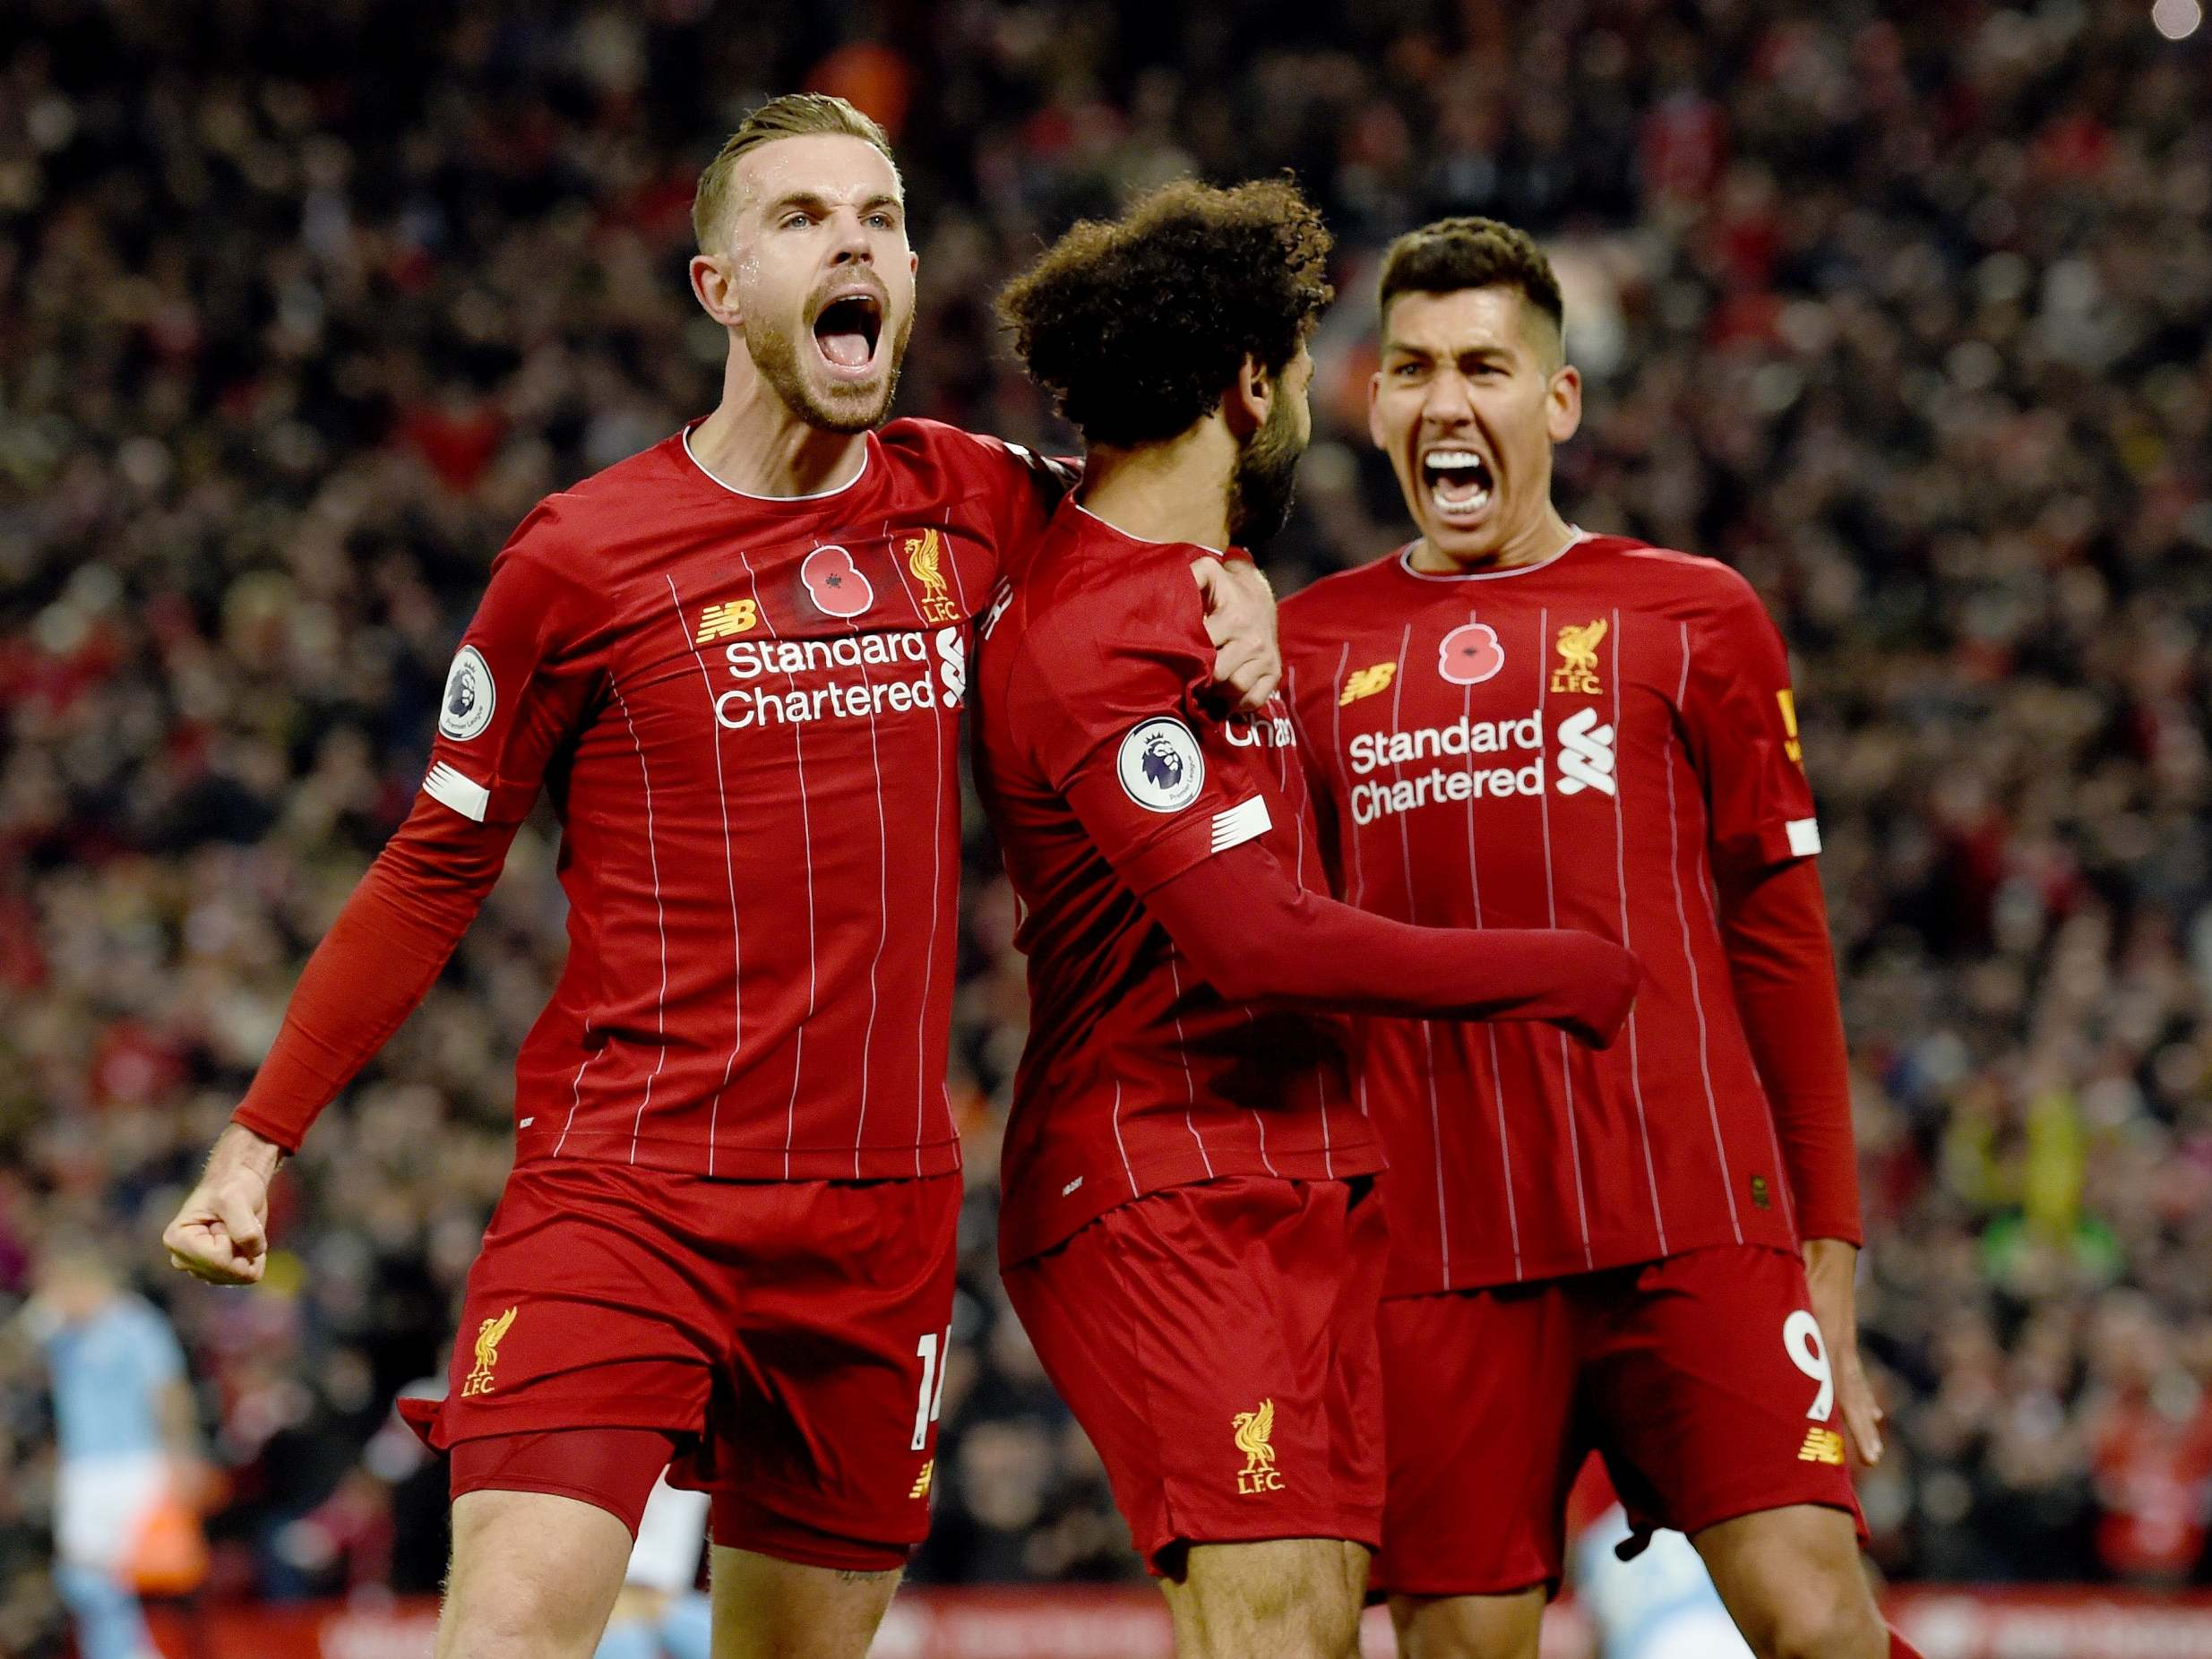 Liverpool vs Man City LIVE: Result and reaction from Premier League fixture today